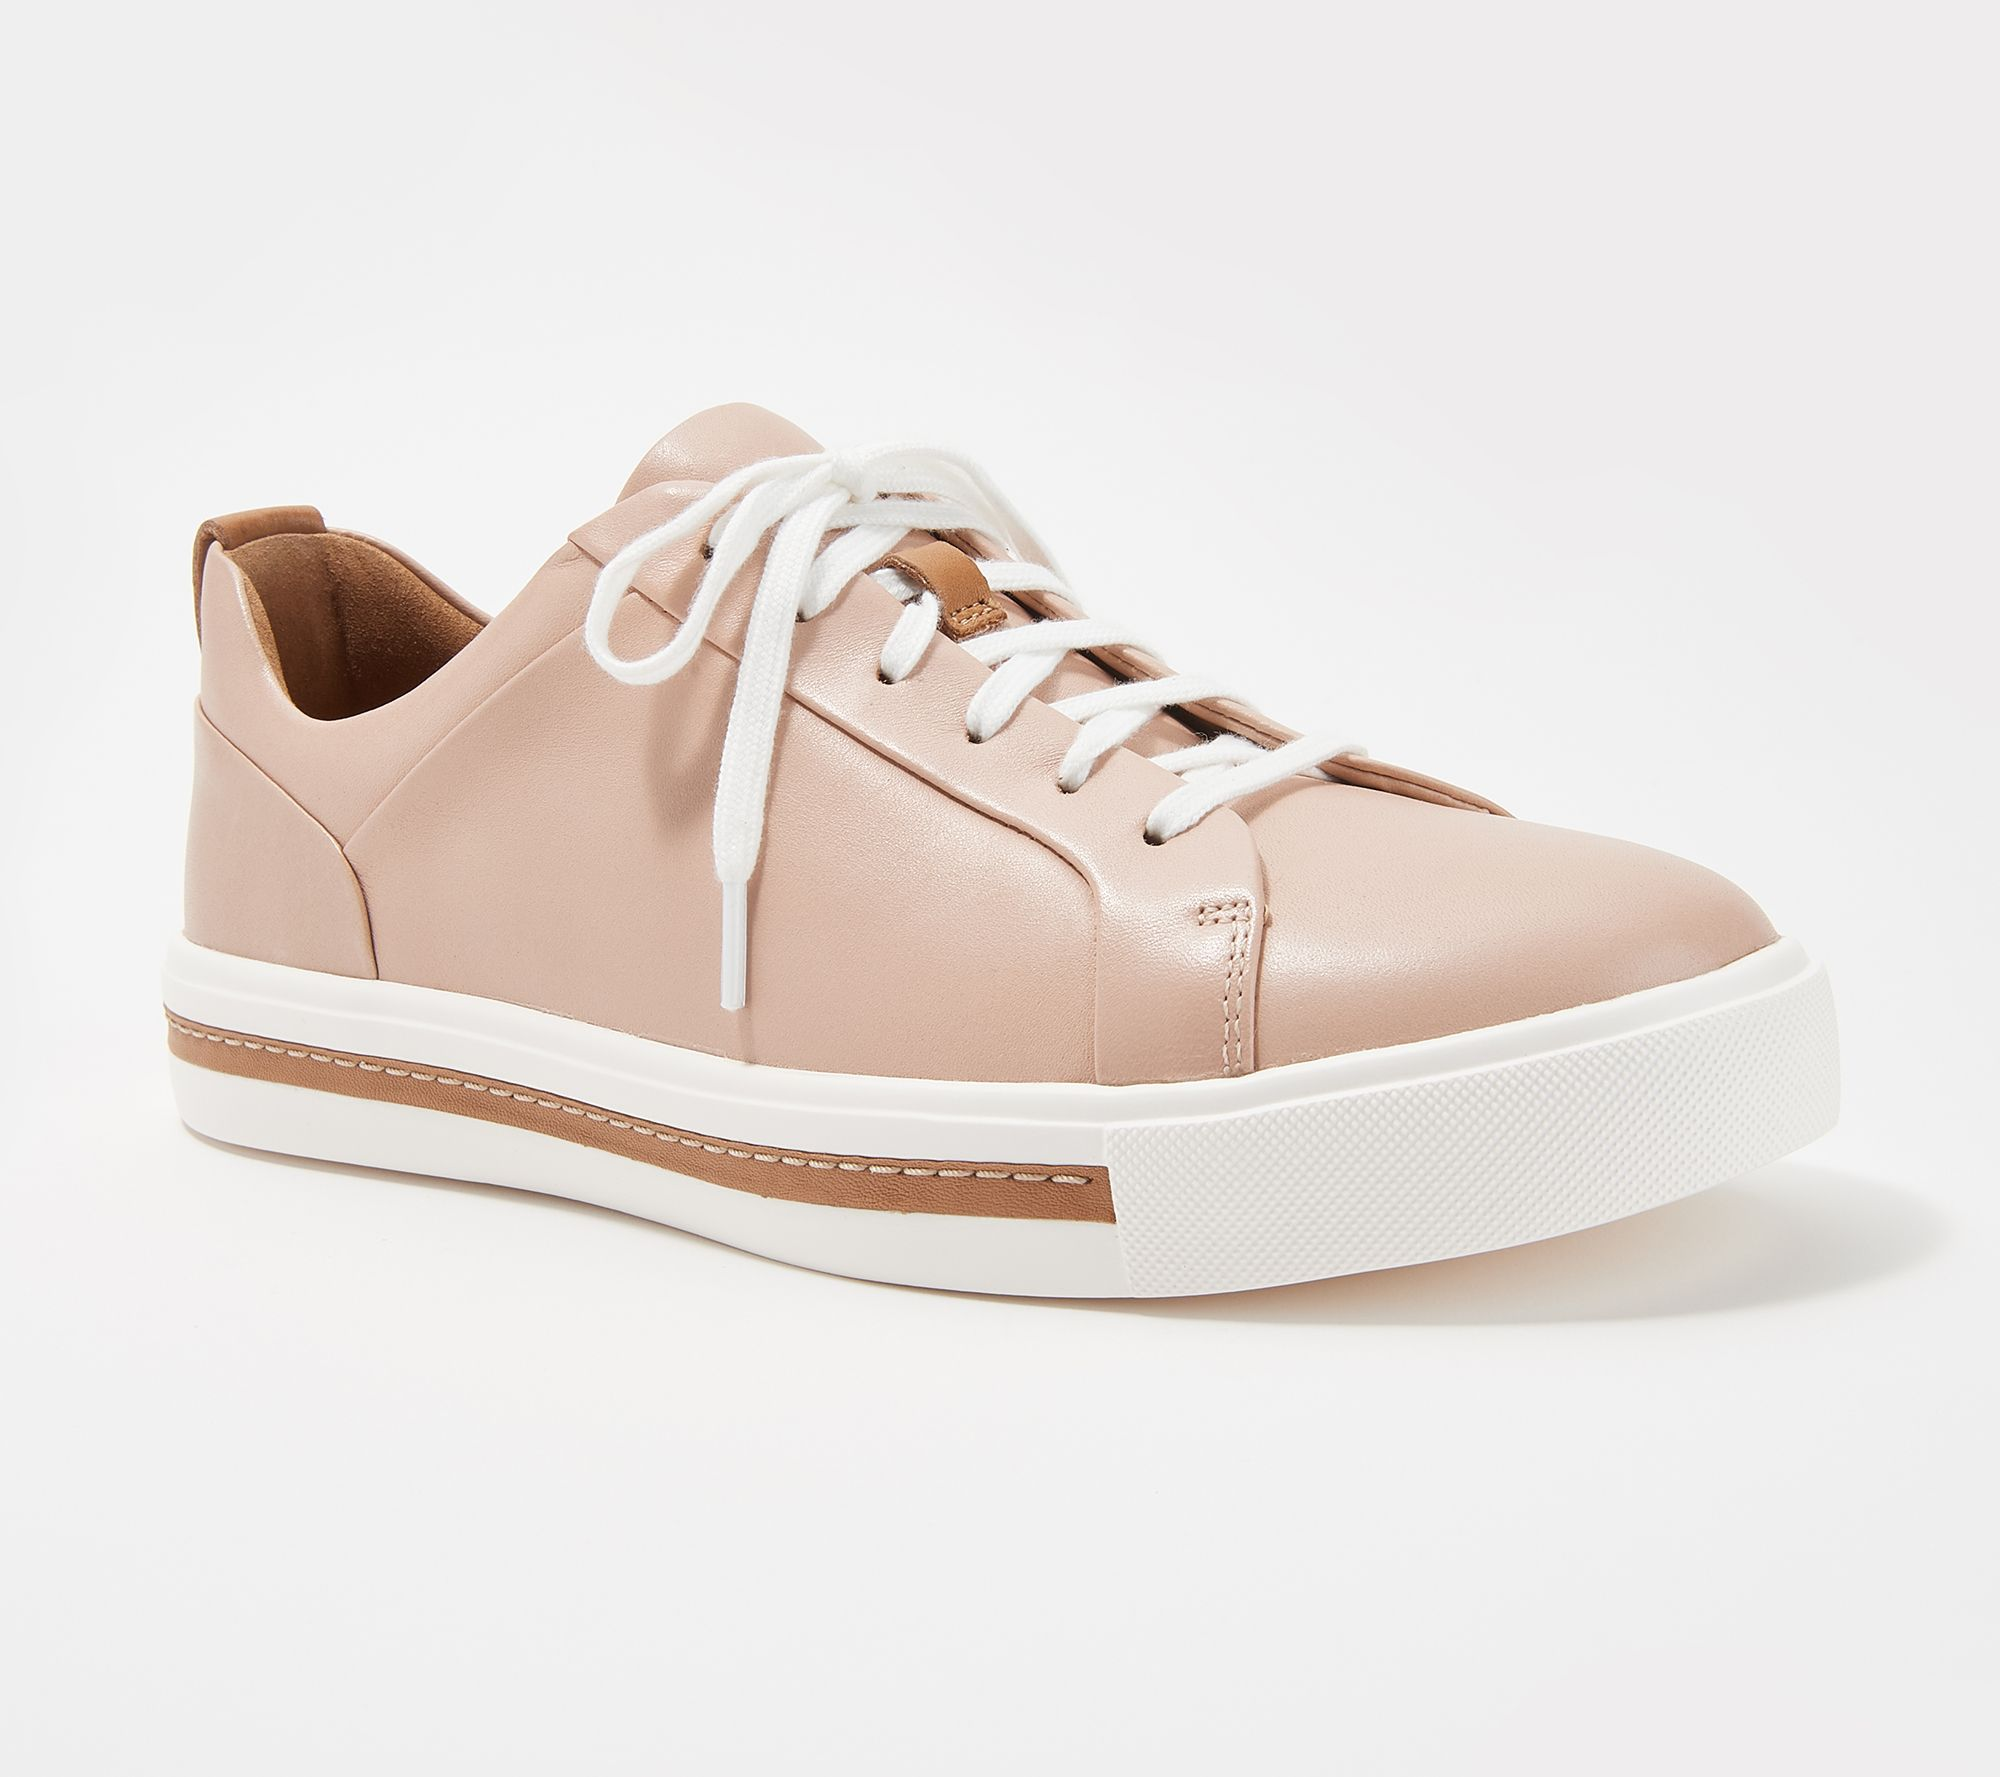 49069b4eec8c Clarks Unstructured Leather Casual Sneakers - Un Maui Lace - Page 1 —  QVC.com